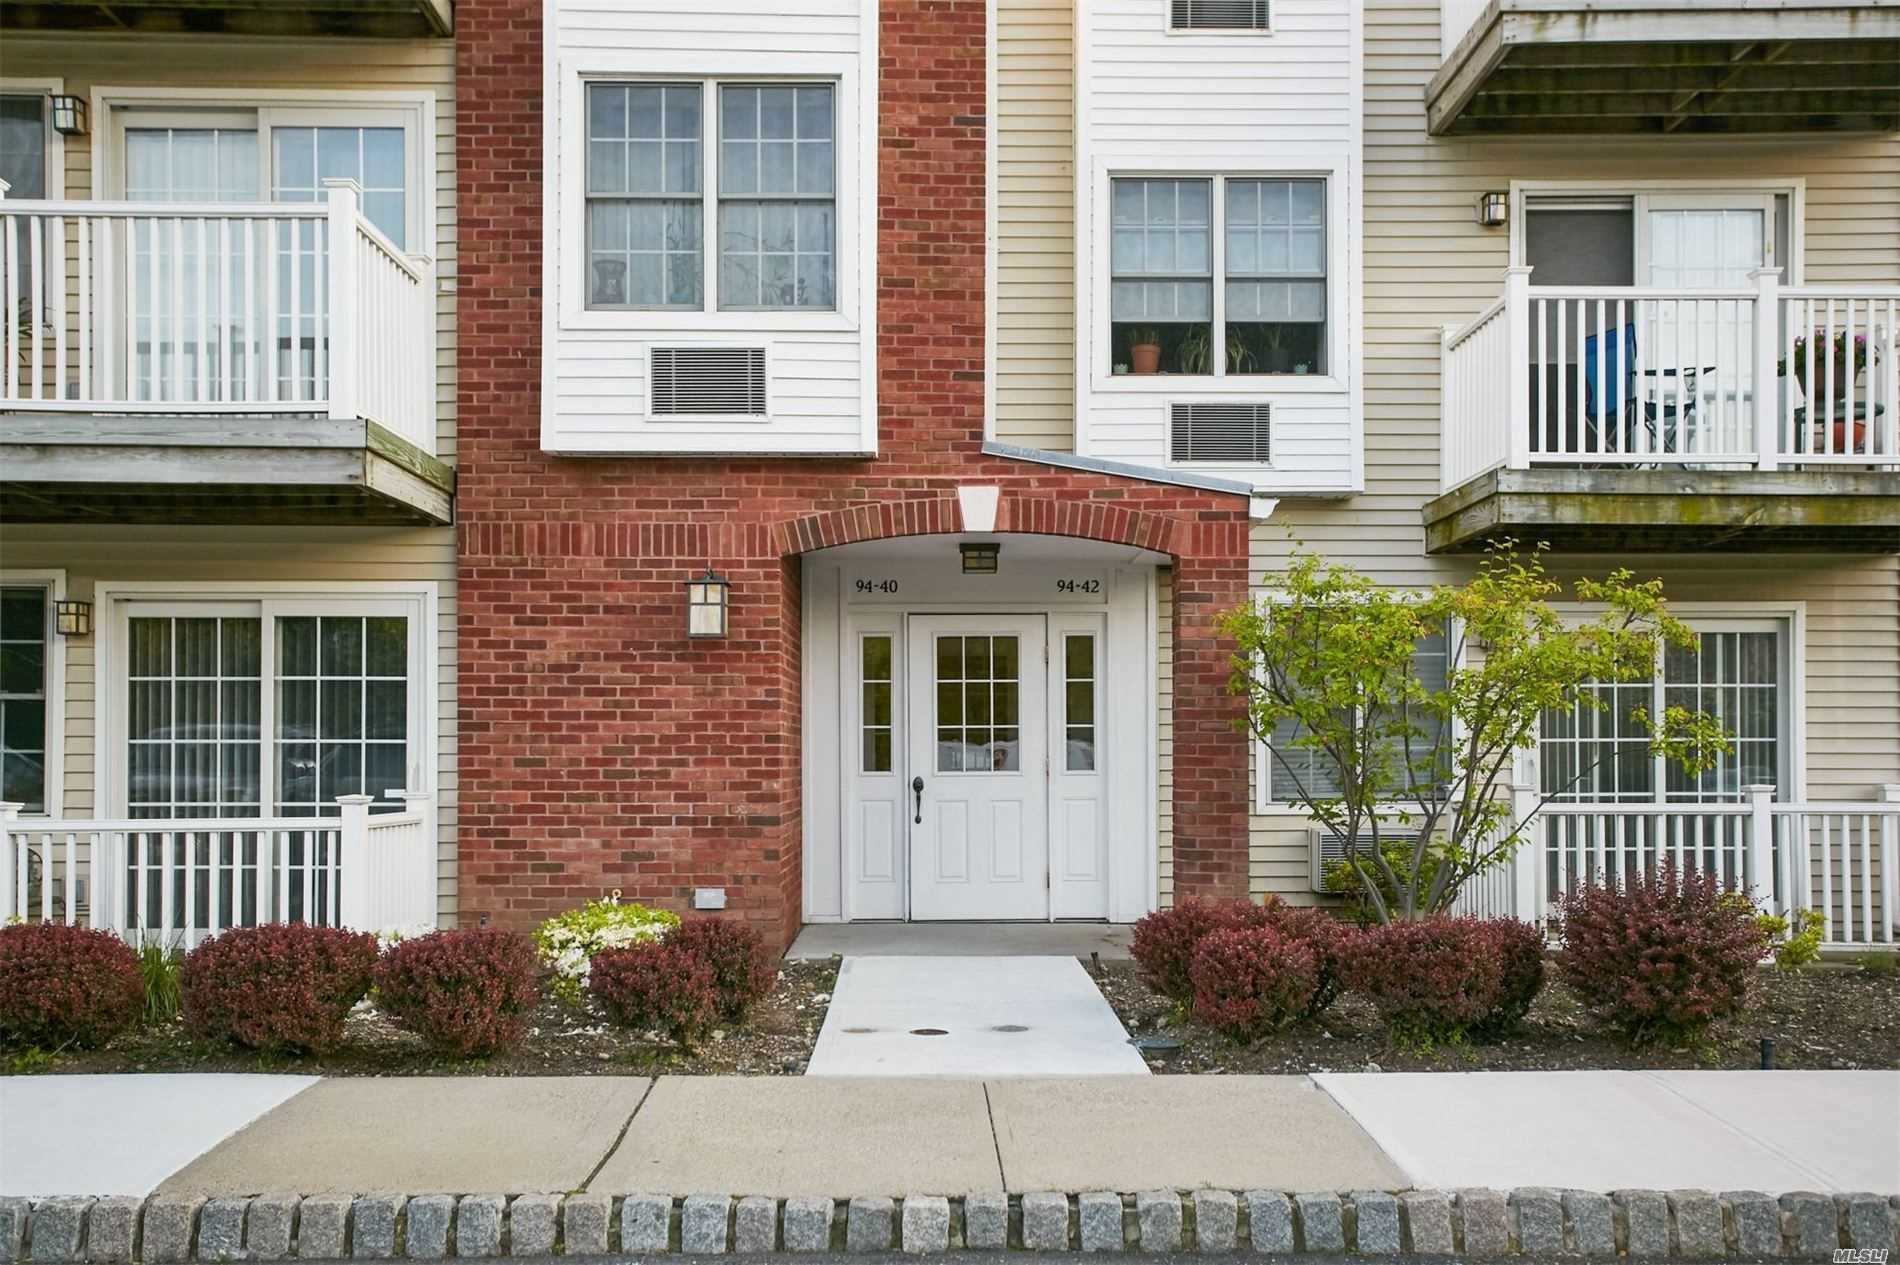 Property for sale at 94-40 Magnolia Court # 3A, Ozone Park NY 11417, Ozone Park,  New York 11417